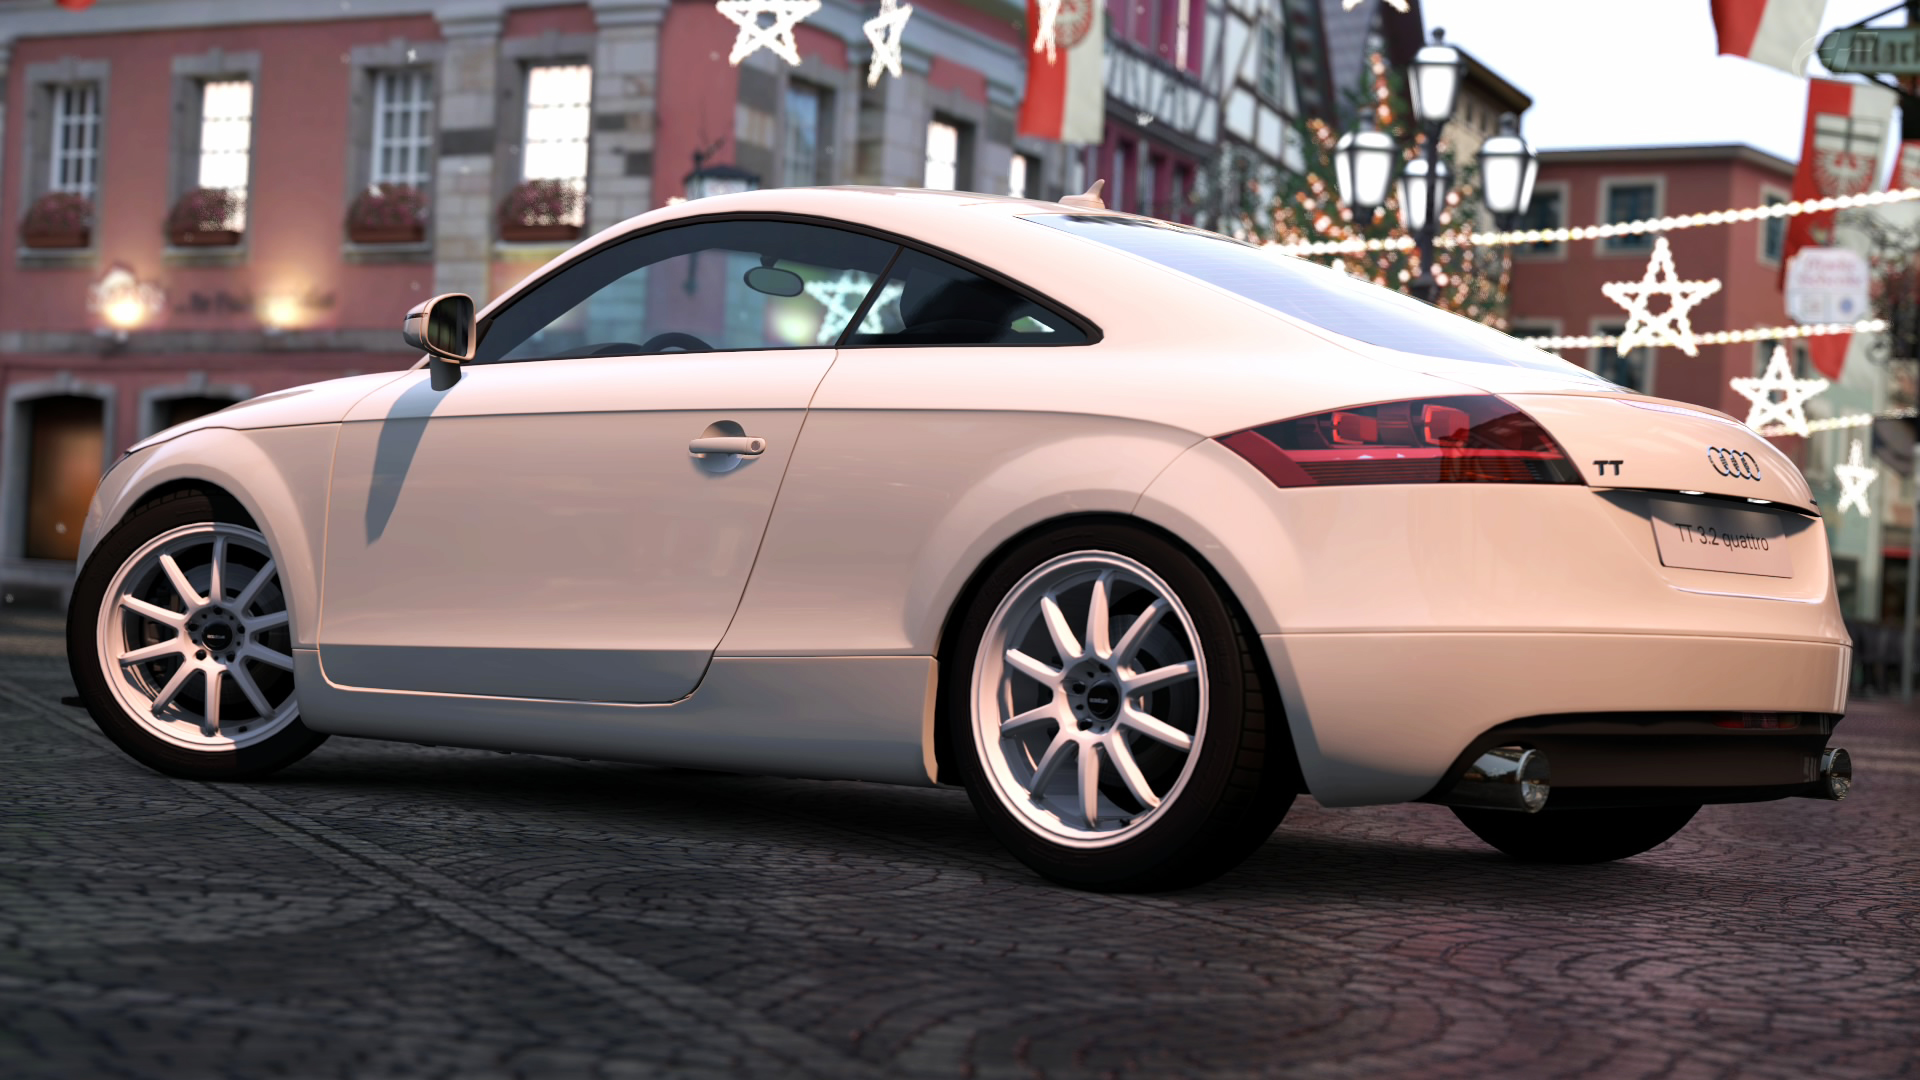 2007 audi tt coupe 3 2 quattro gran turismo 5 by vertualissimo on deviantart. Black Bedroom Furniture Sets. Home Design Ideas